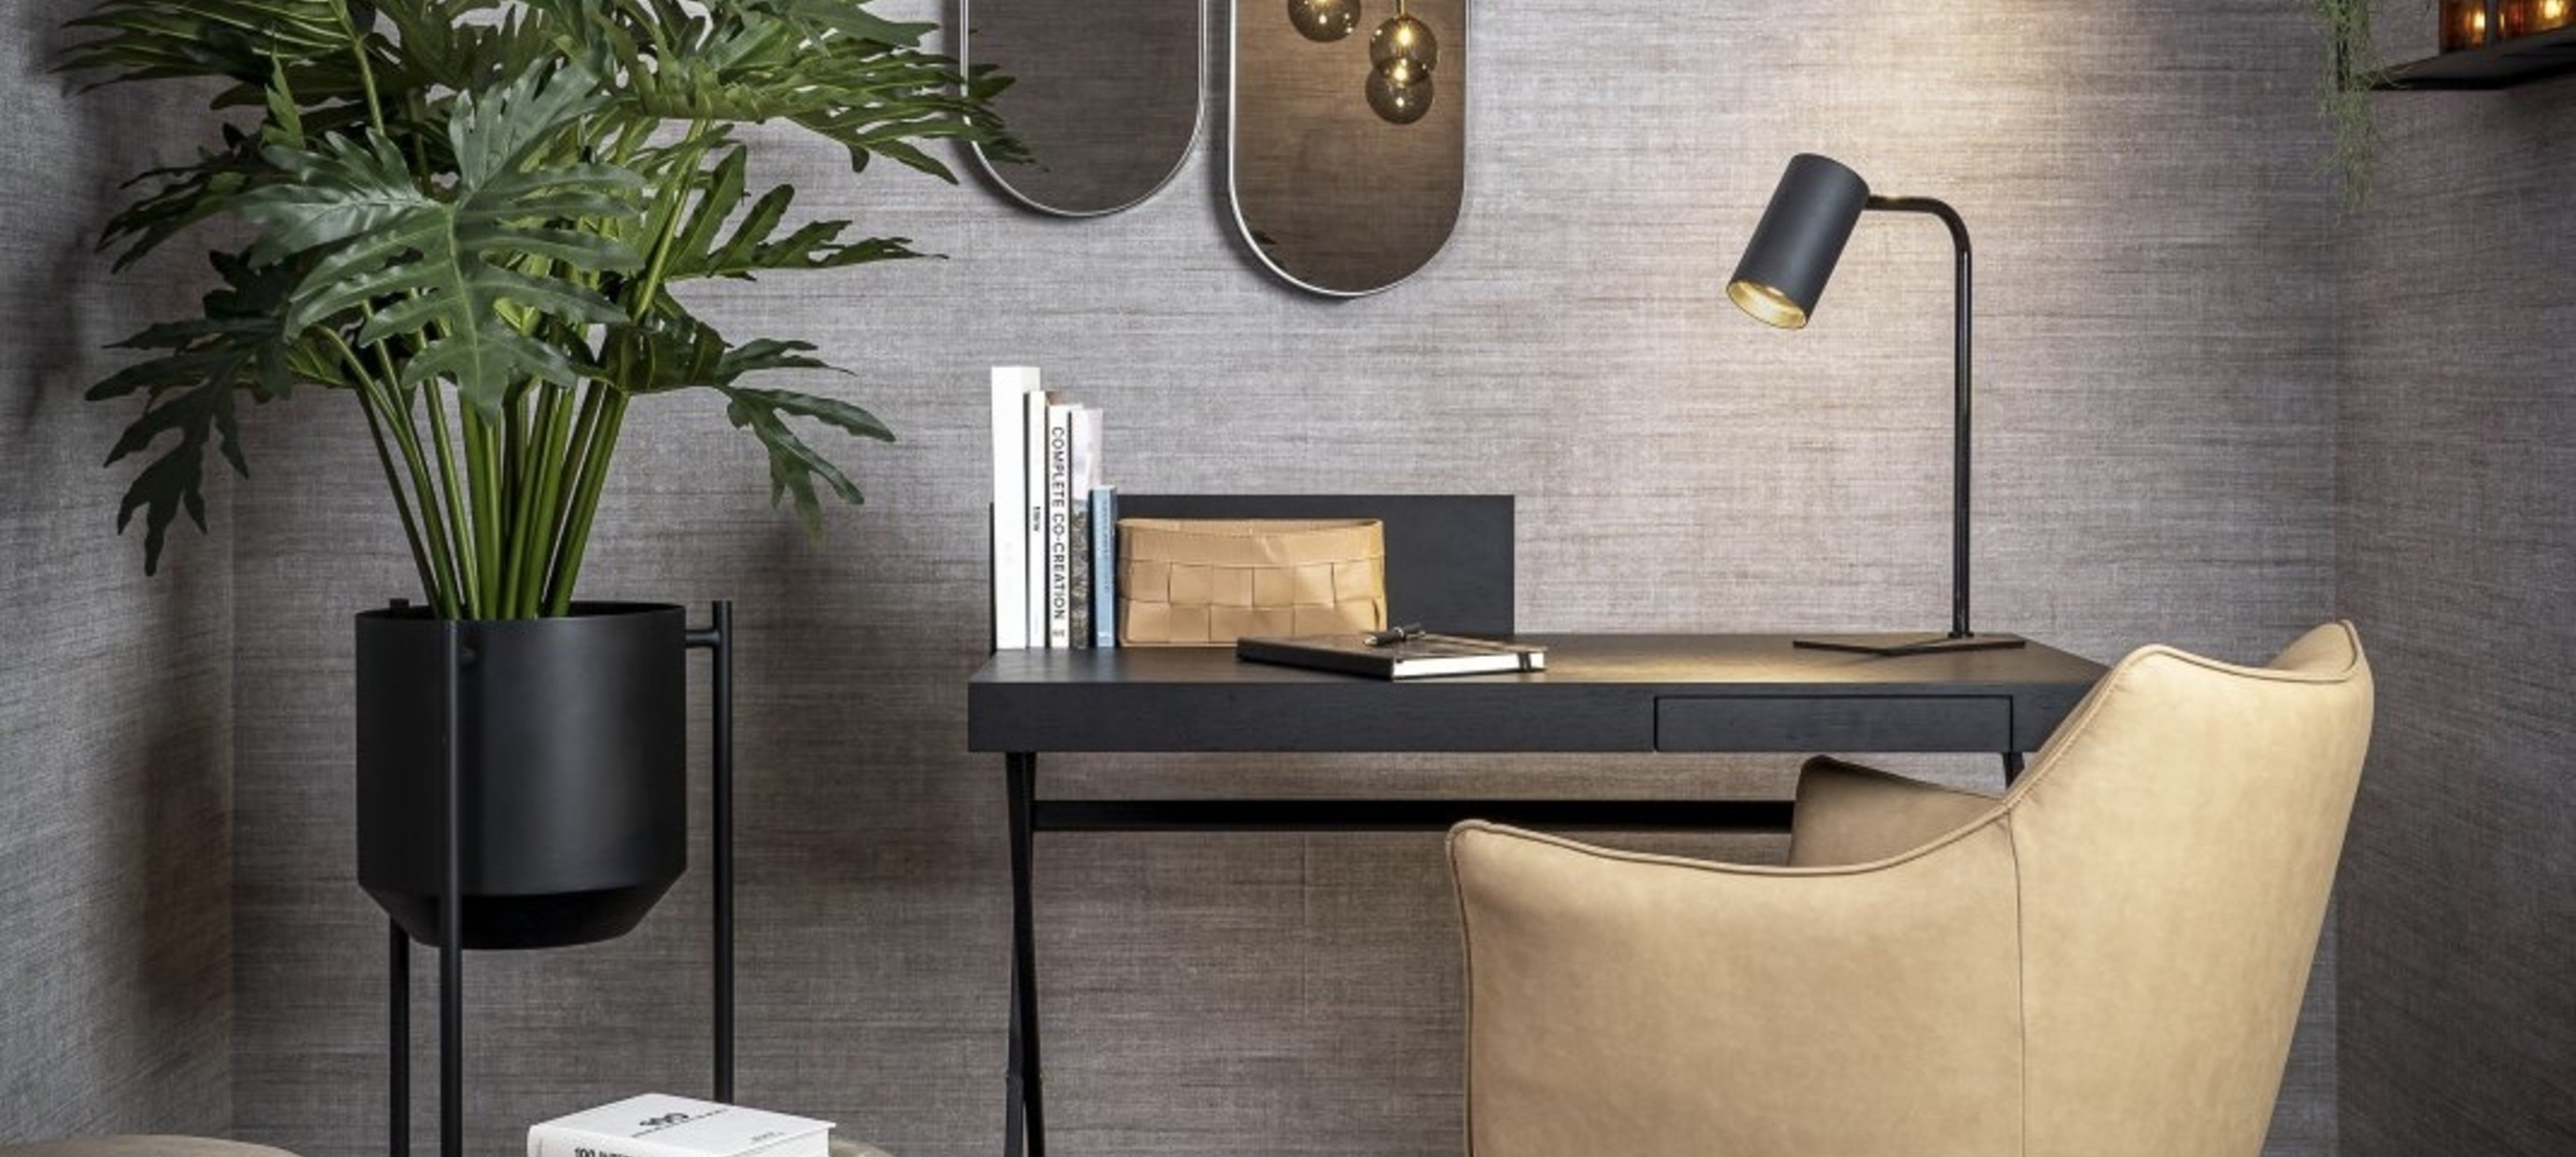 Shop the room | Clarity home office >